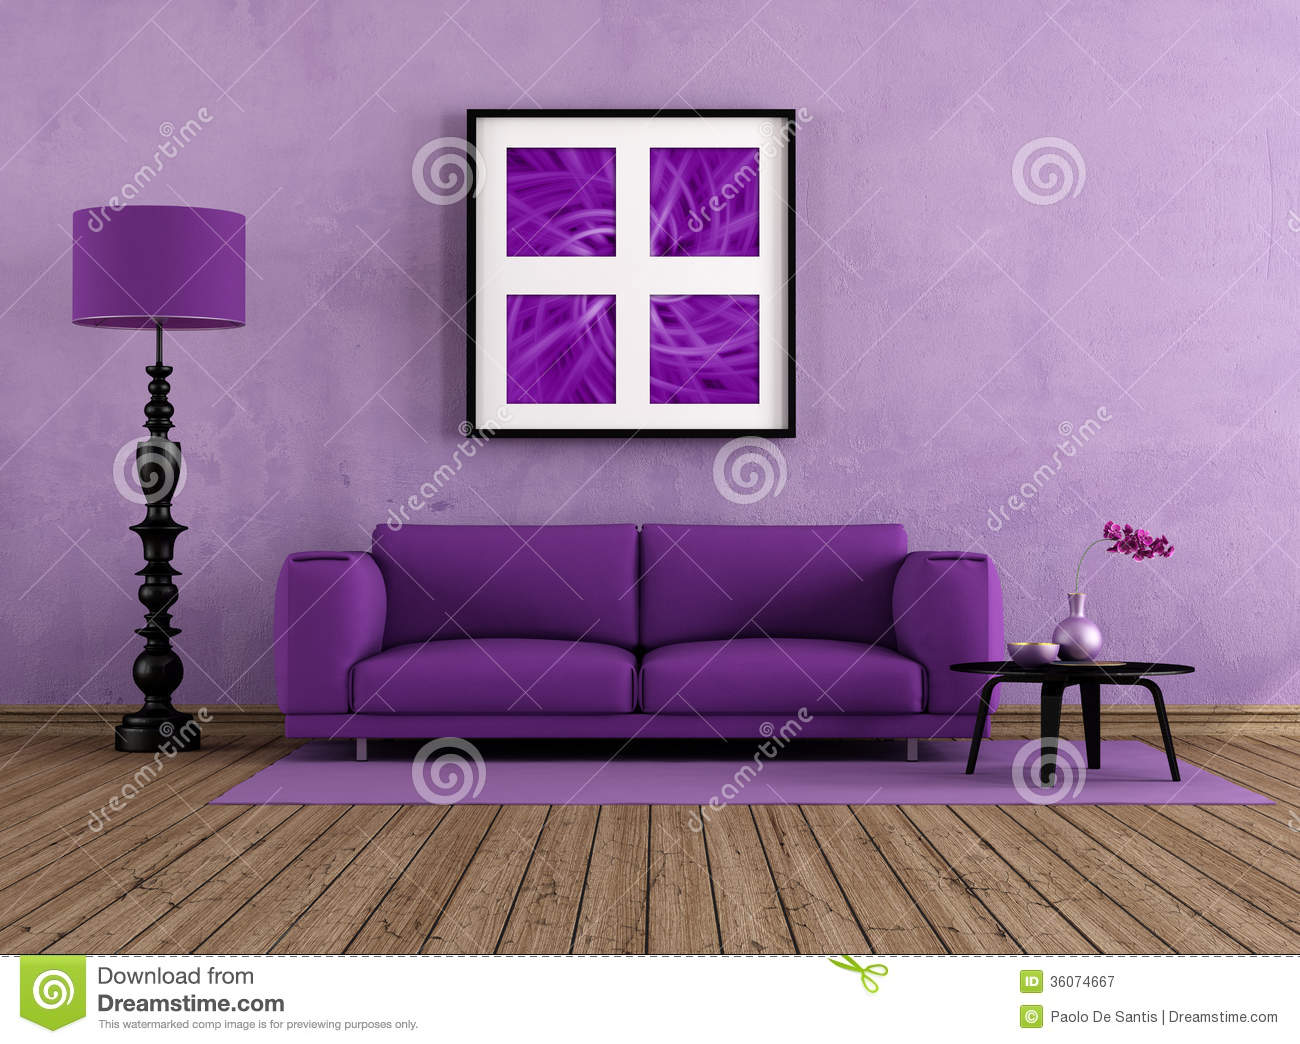 living room wooden sofa furniture design pictures remodel decor and ideas purple royalty free stock photography - image ...